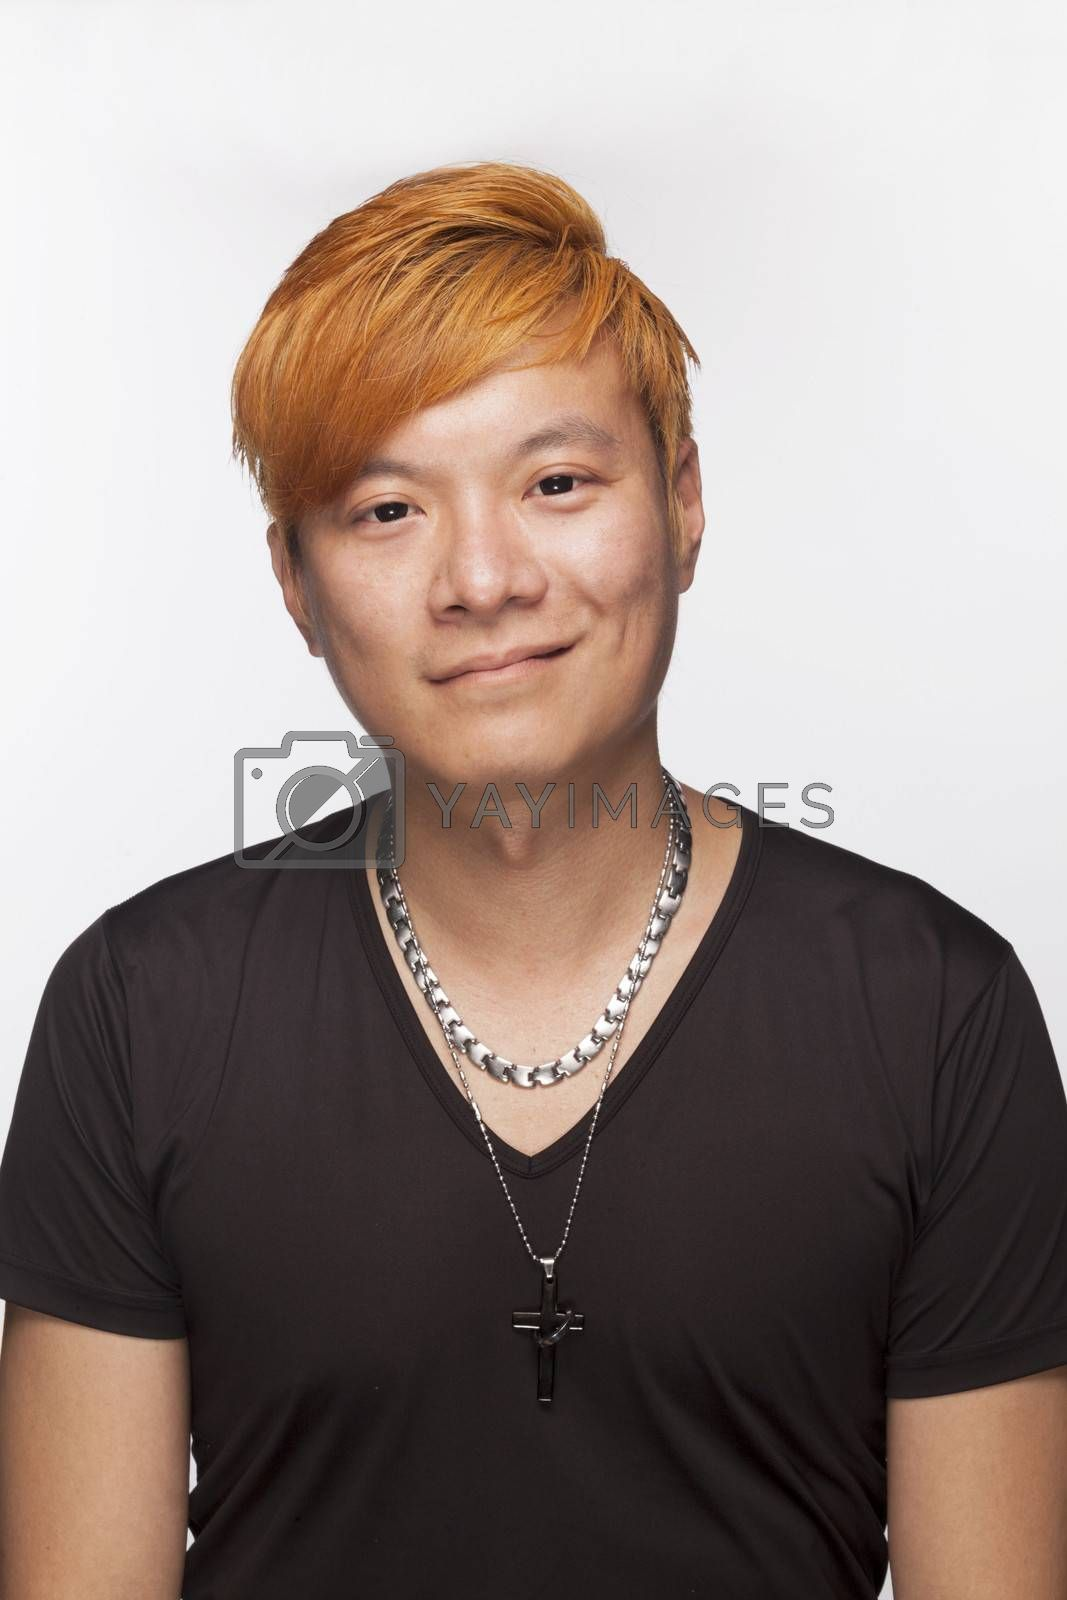 Portrait of smiling young man with orange hair